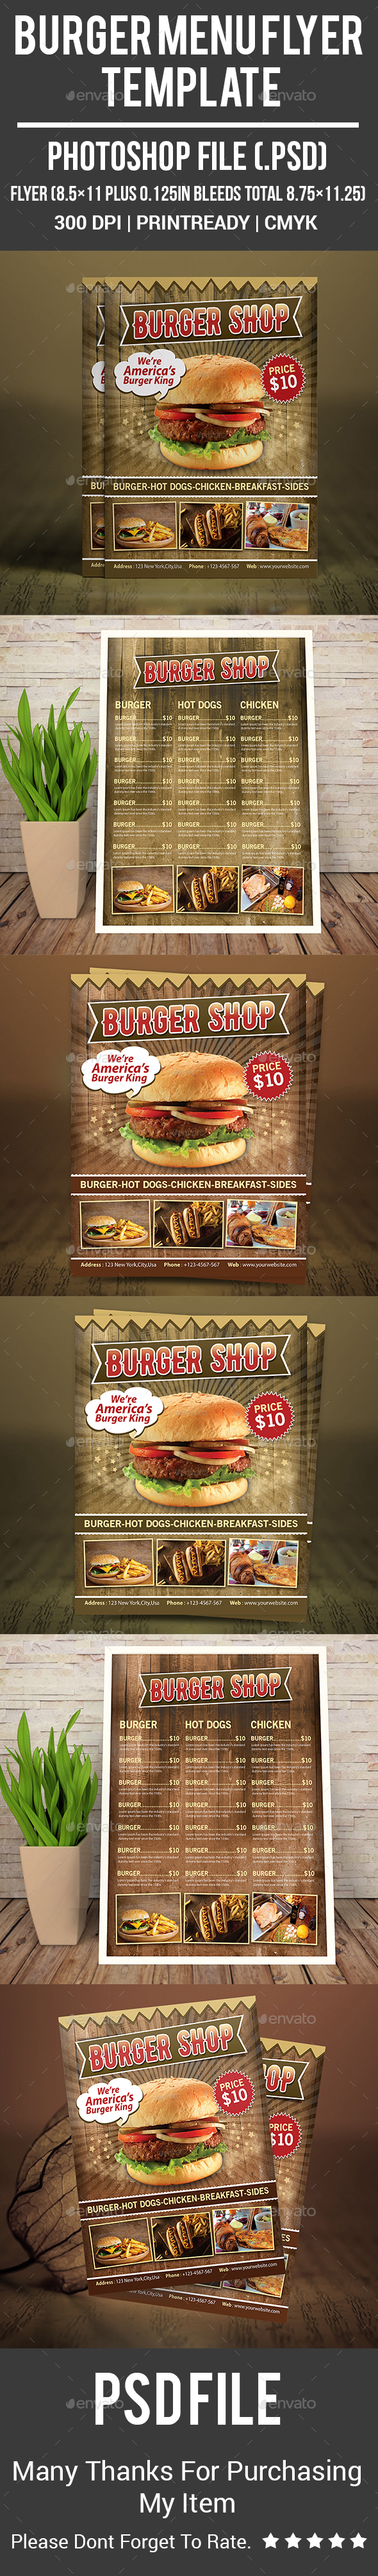 Burger Menu Flyer Template - Food Menus Print Templates